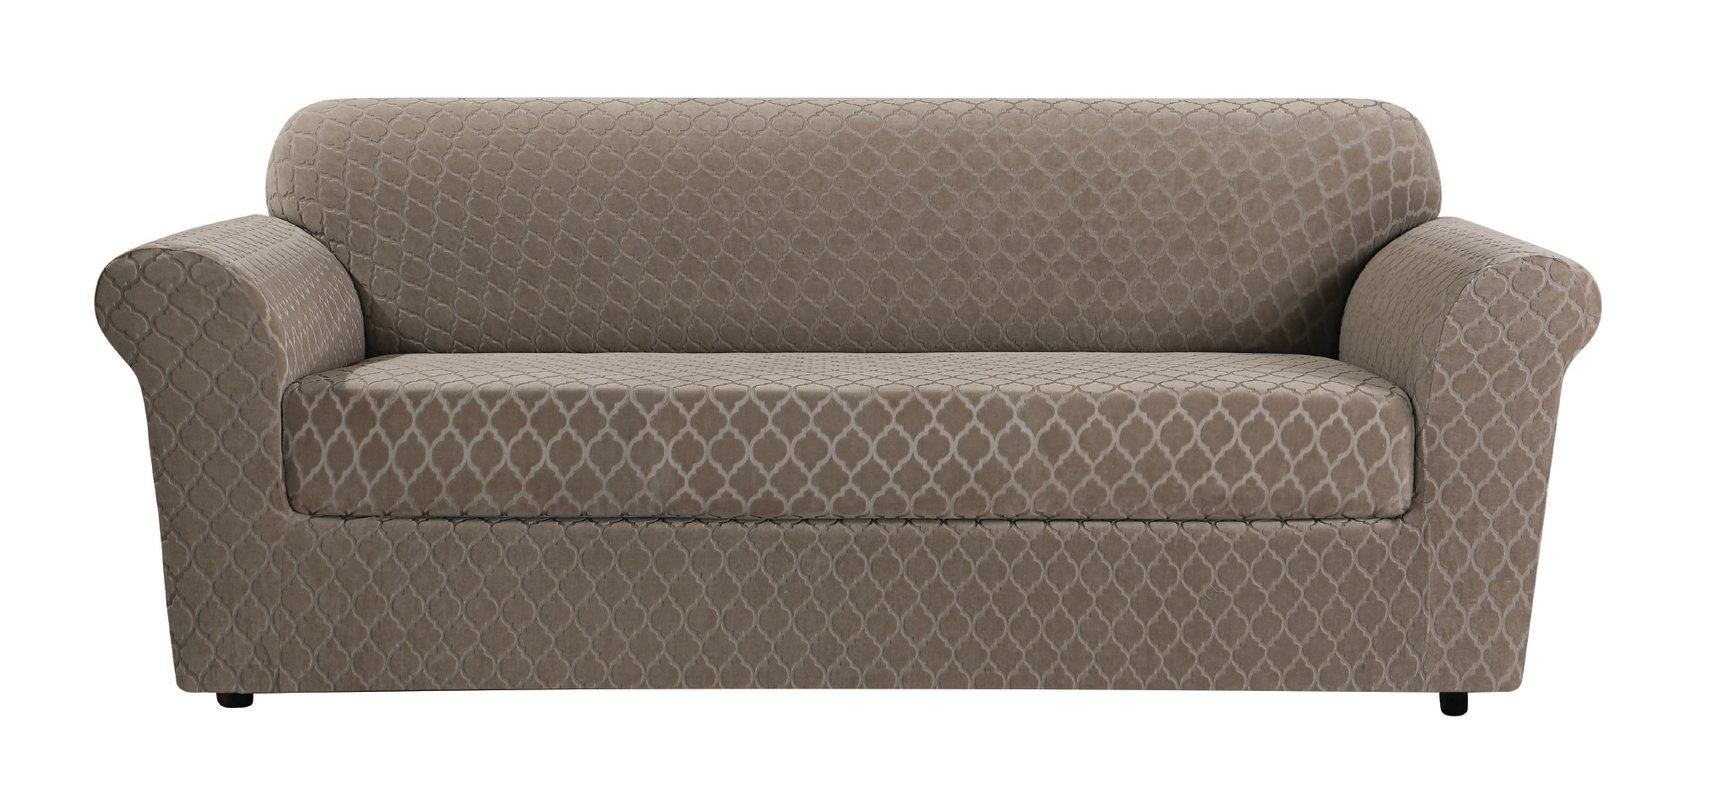 Sure Fit Stretch Grand Marrakesh 2 Piece Slipcover & Reviews | Wayfair Throughout Loveseat Slipcovers 3 Pieces (View 15 of 20)